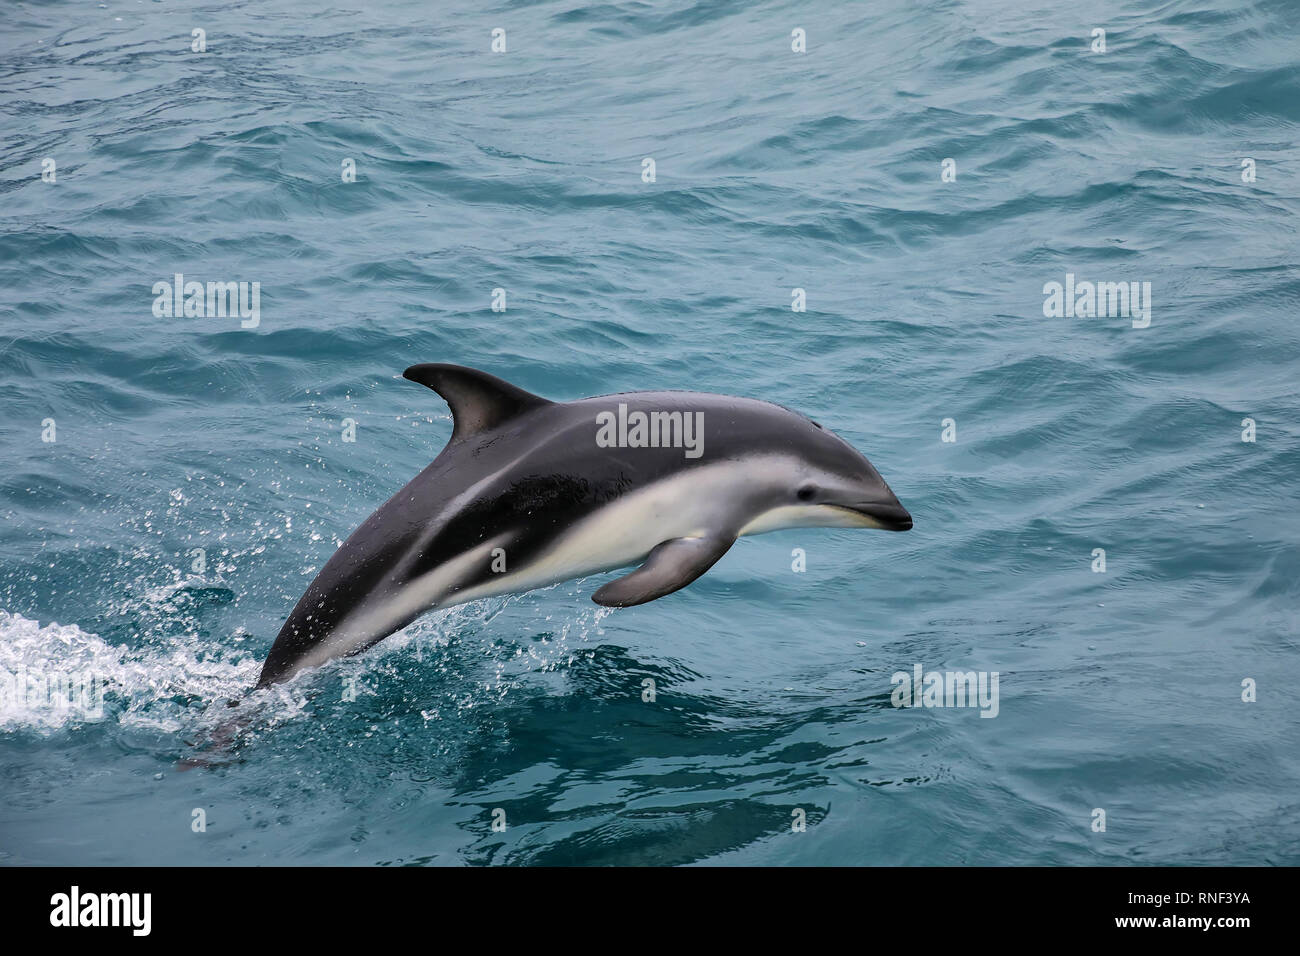 Dusky dolphin swimming off the coast of Kaikoura, New Zealand. Kaikoura is a popular tourist destination for watching and swimming with dolphins. - Stock Image